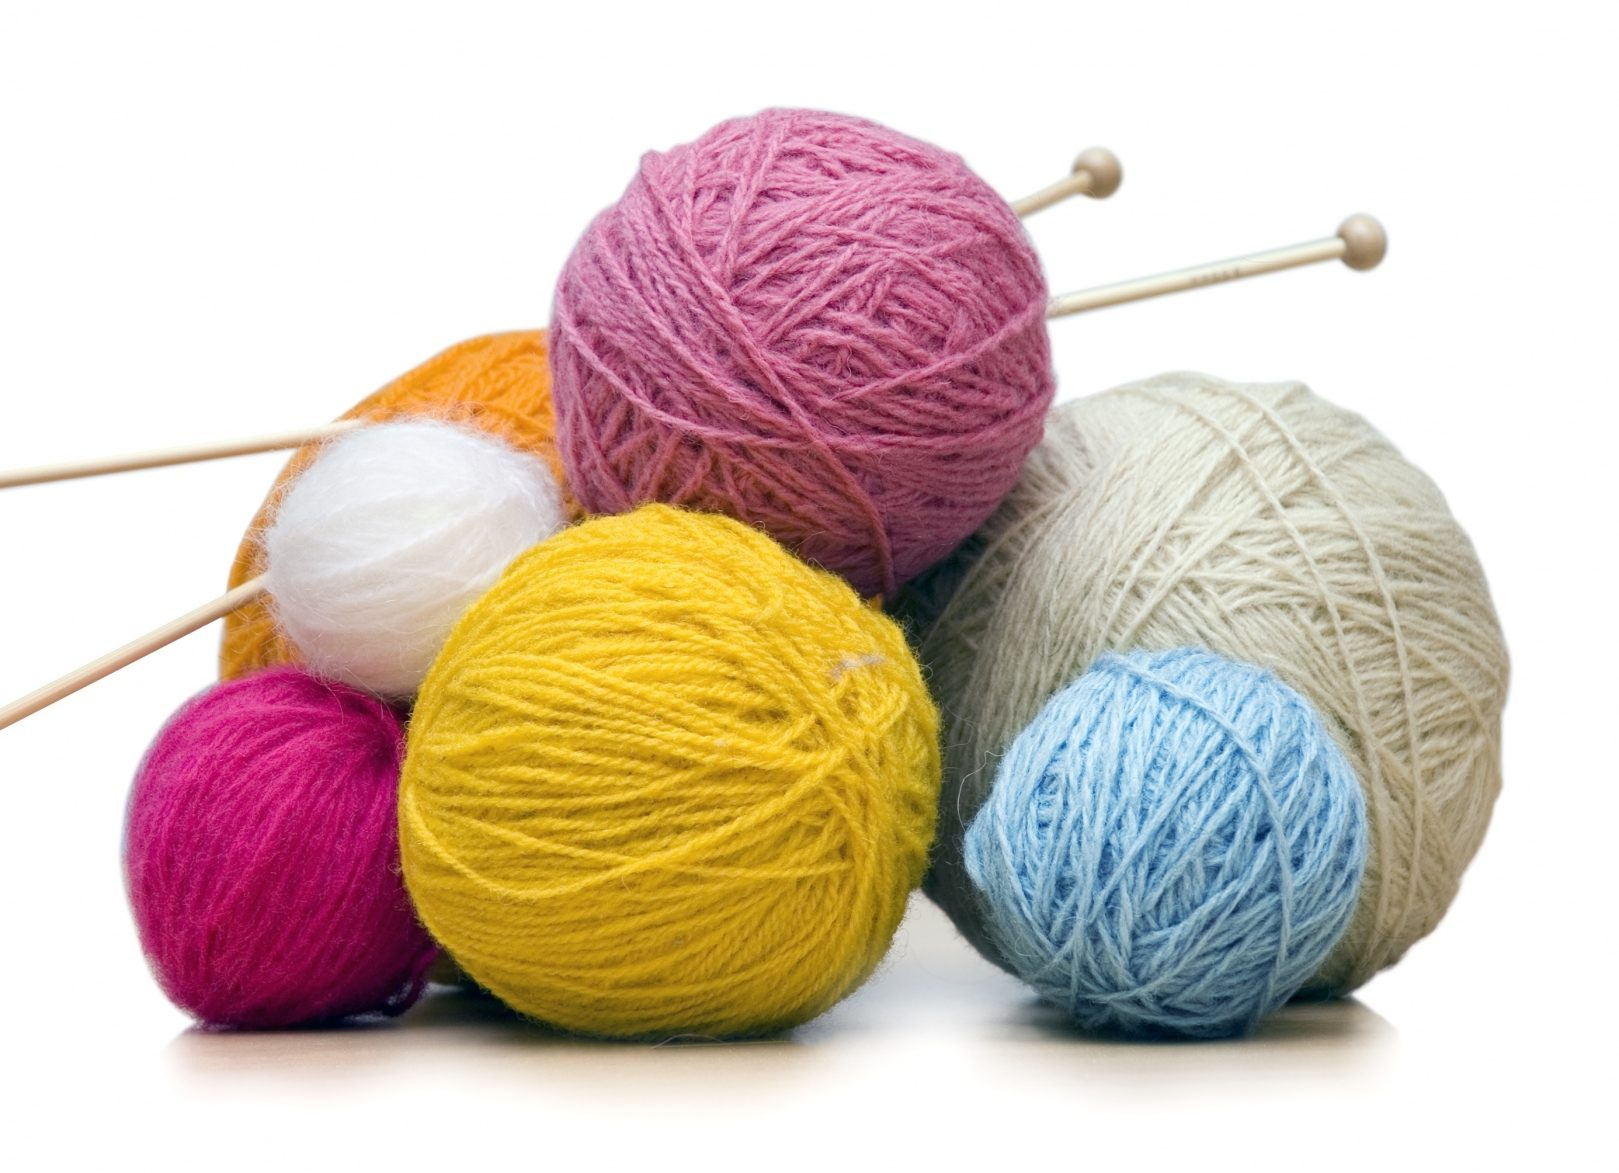 Basic Knitting and Crocheting for Today's Woman: 14 Projects to Soothe the Mind & Body By Anita Closic